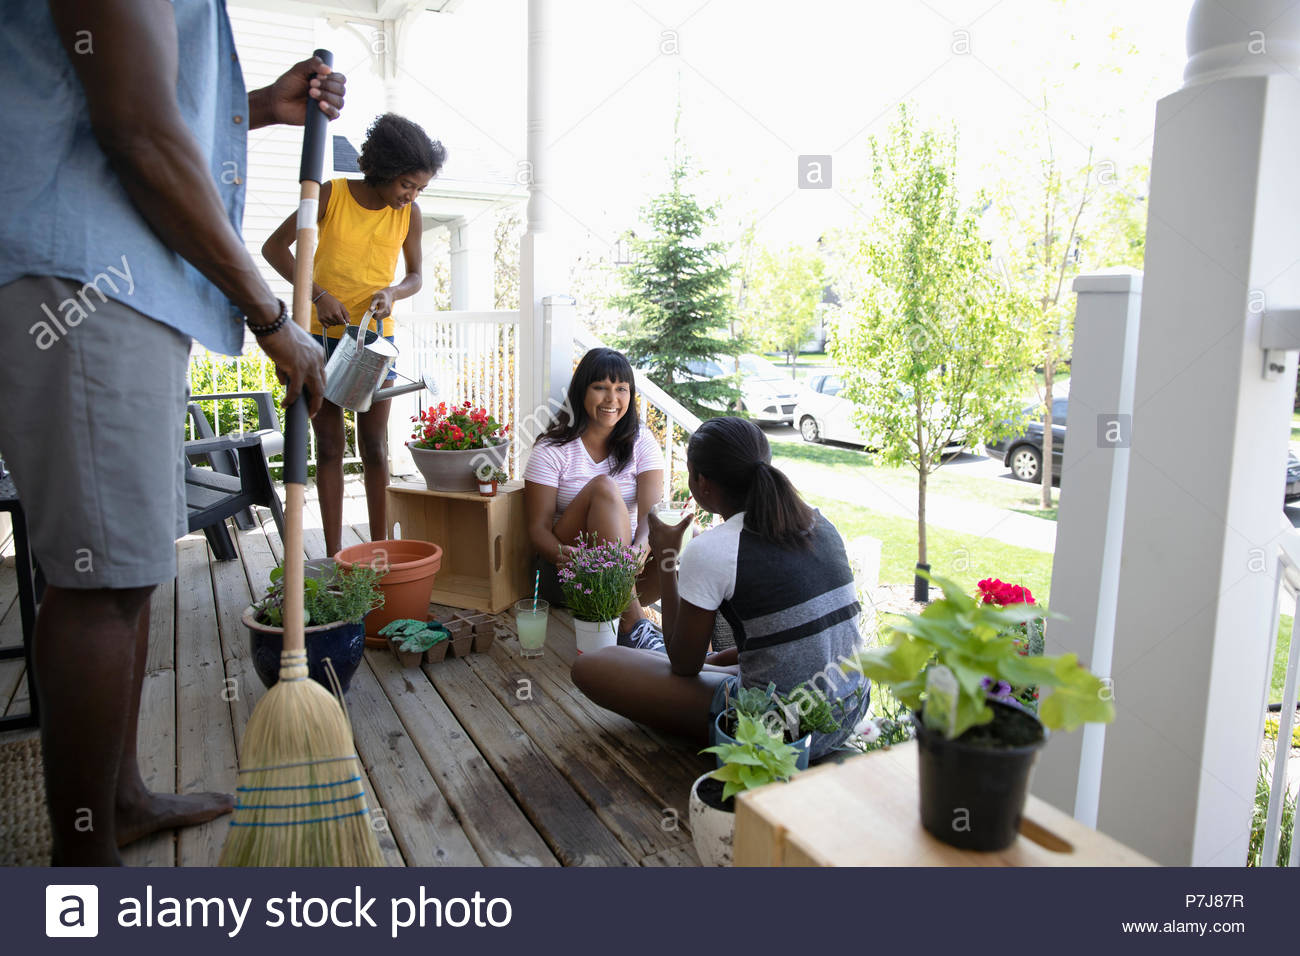 Family gardening, planting flowers and sweeping on front stoop - Stock Image